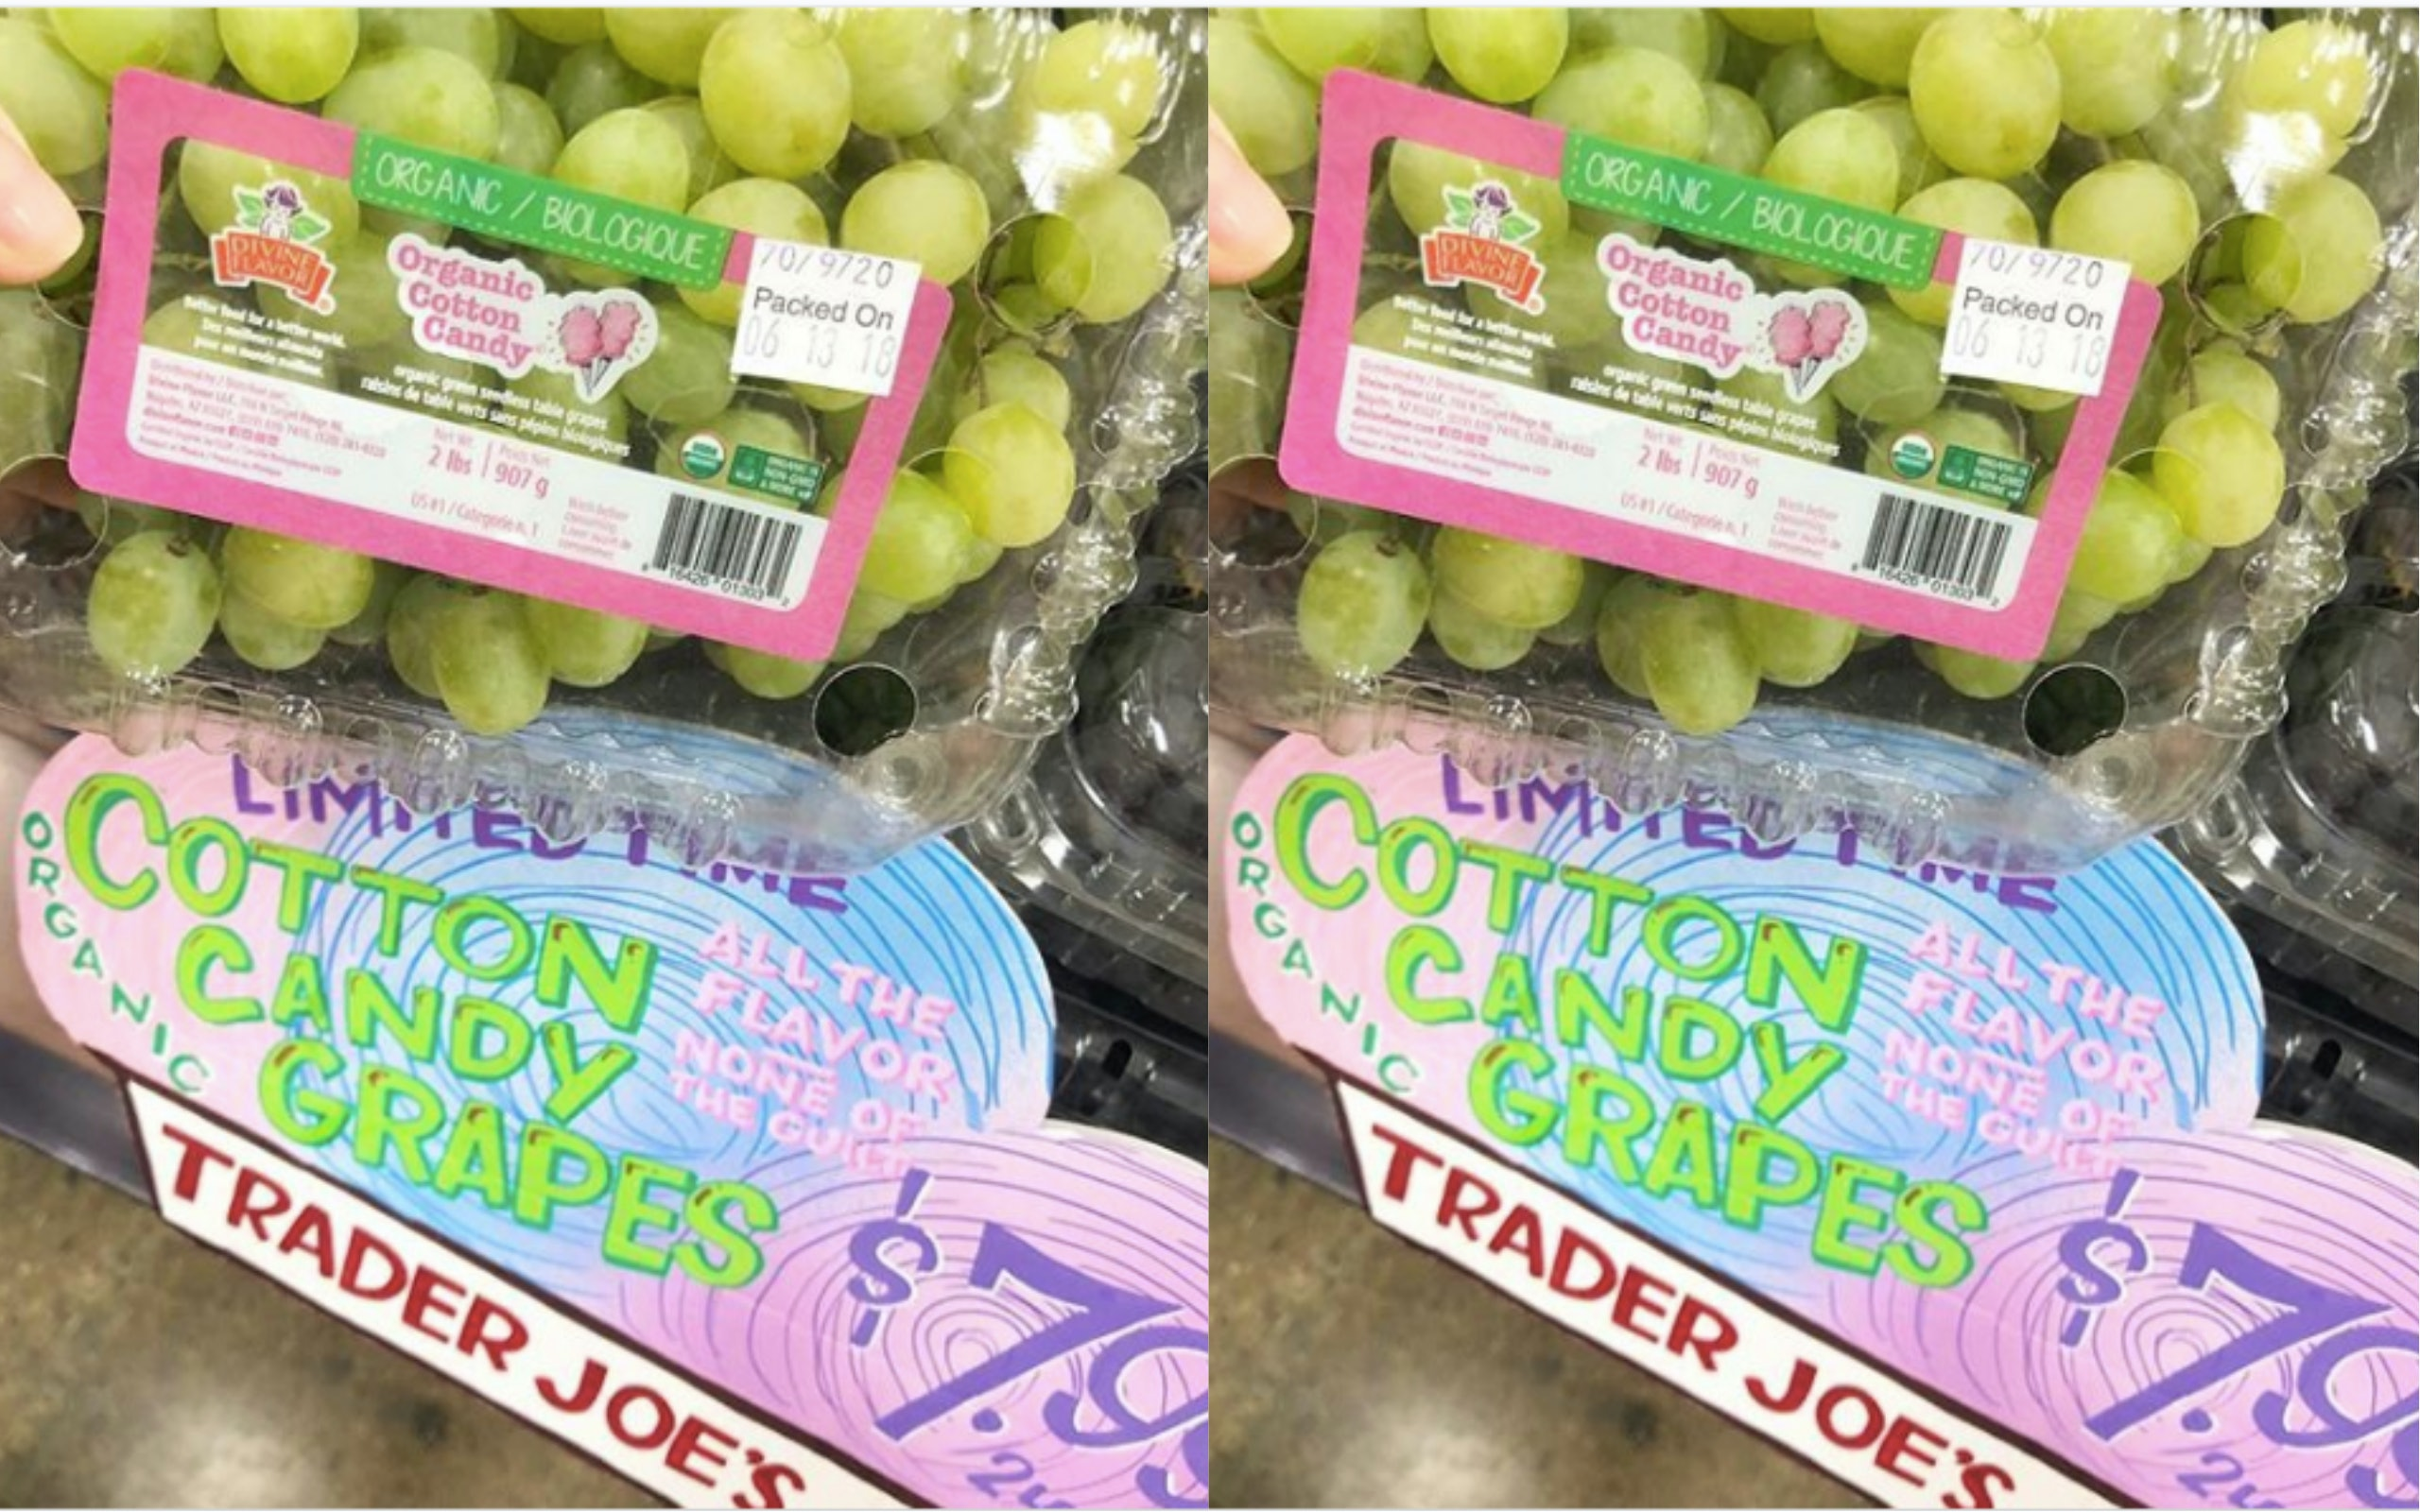 COTTON CANDY GRAPES NEAR ME